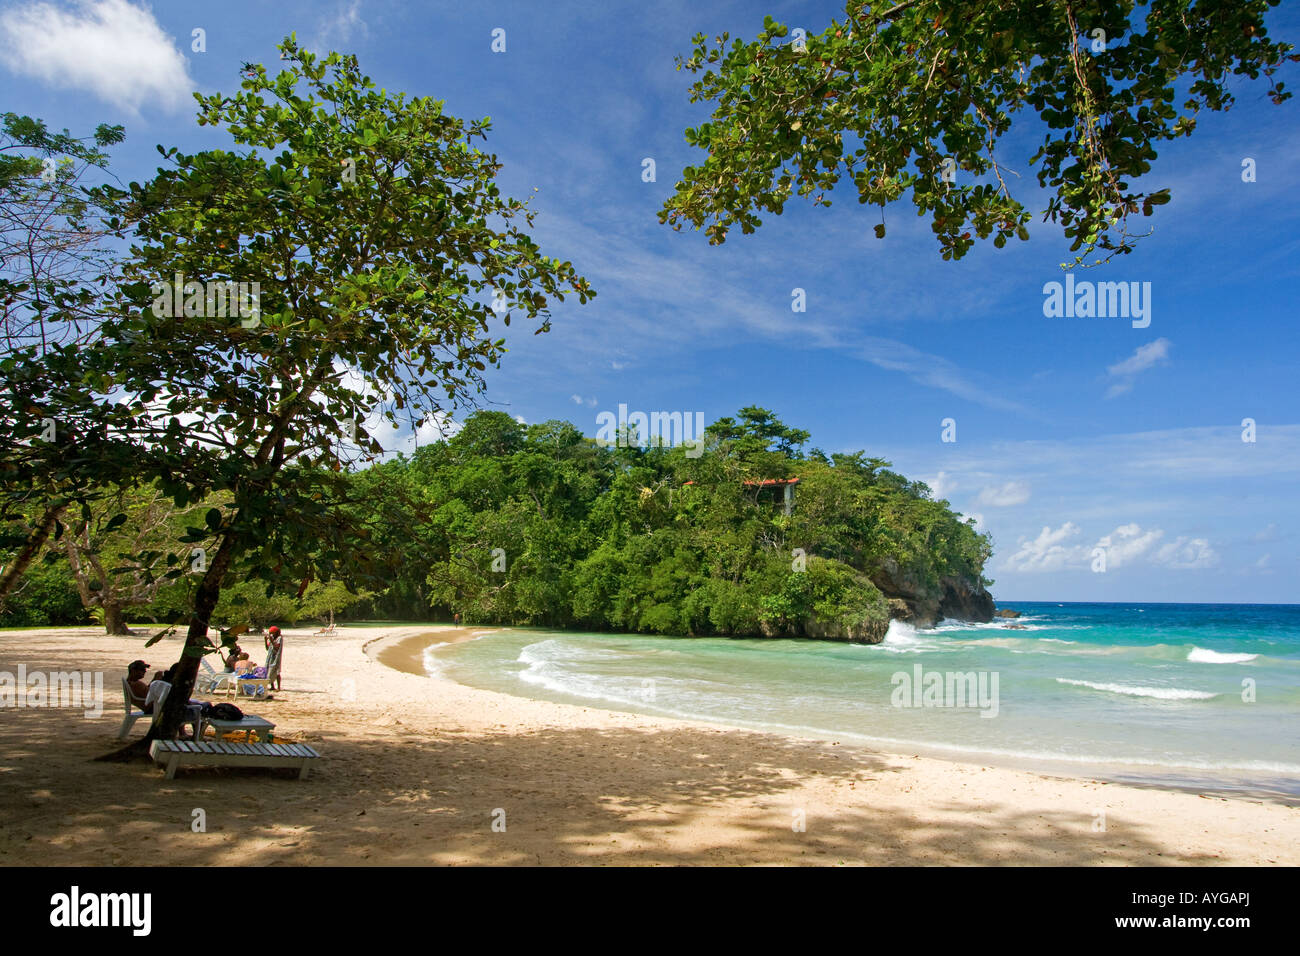 Jamaica Port Antonio Tropical landscape at Frenchmans Cove beach Stock Photo